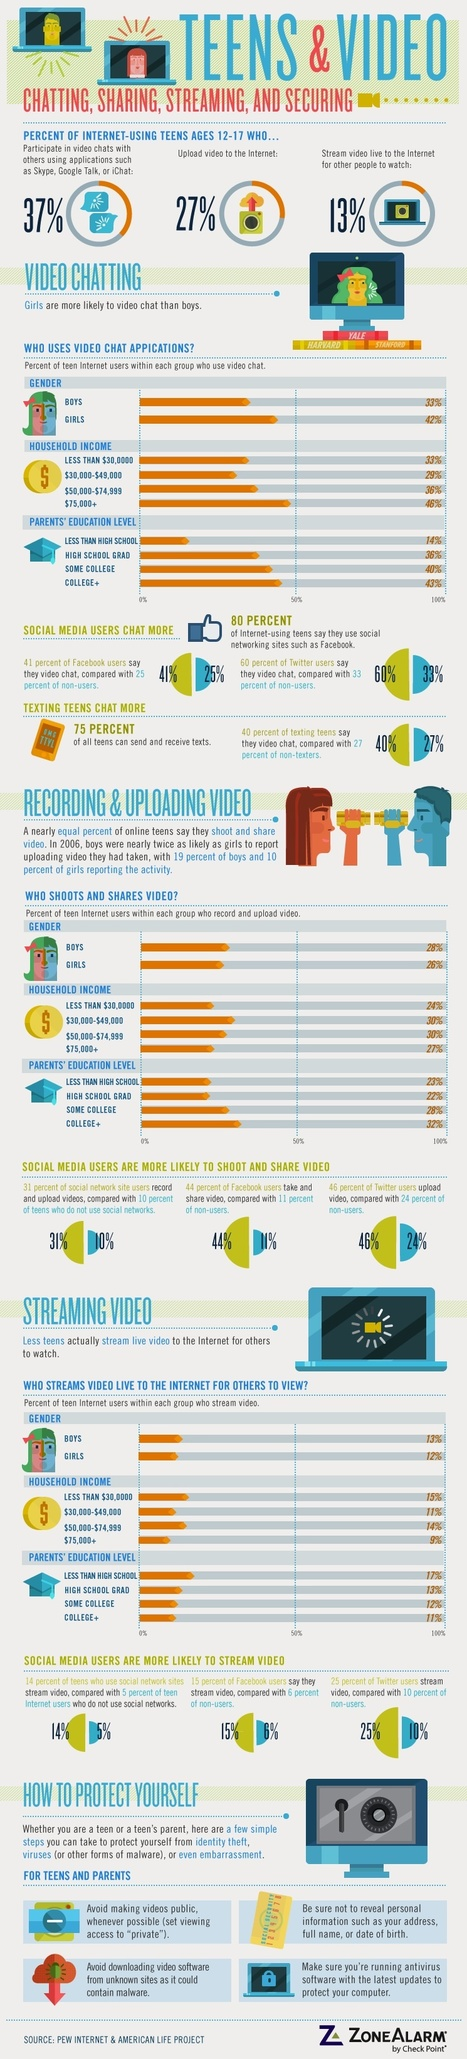 Teens and Sharing Video: Is it Safe? [INFOGRAPHIC] | Digital & Media Literacy for Parents | Scoop.it